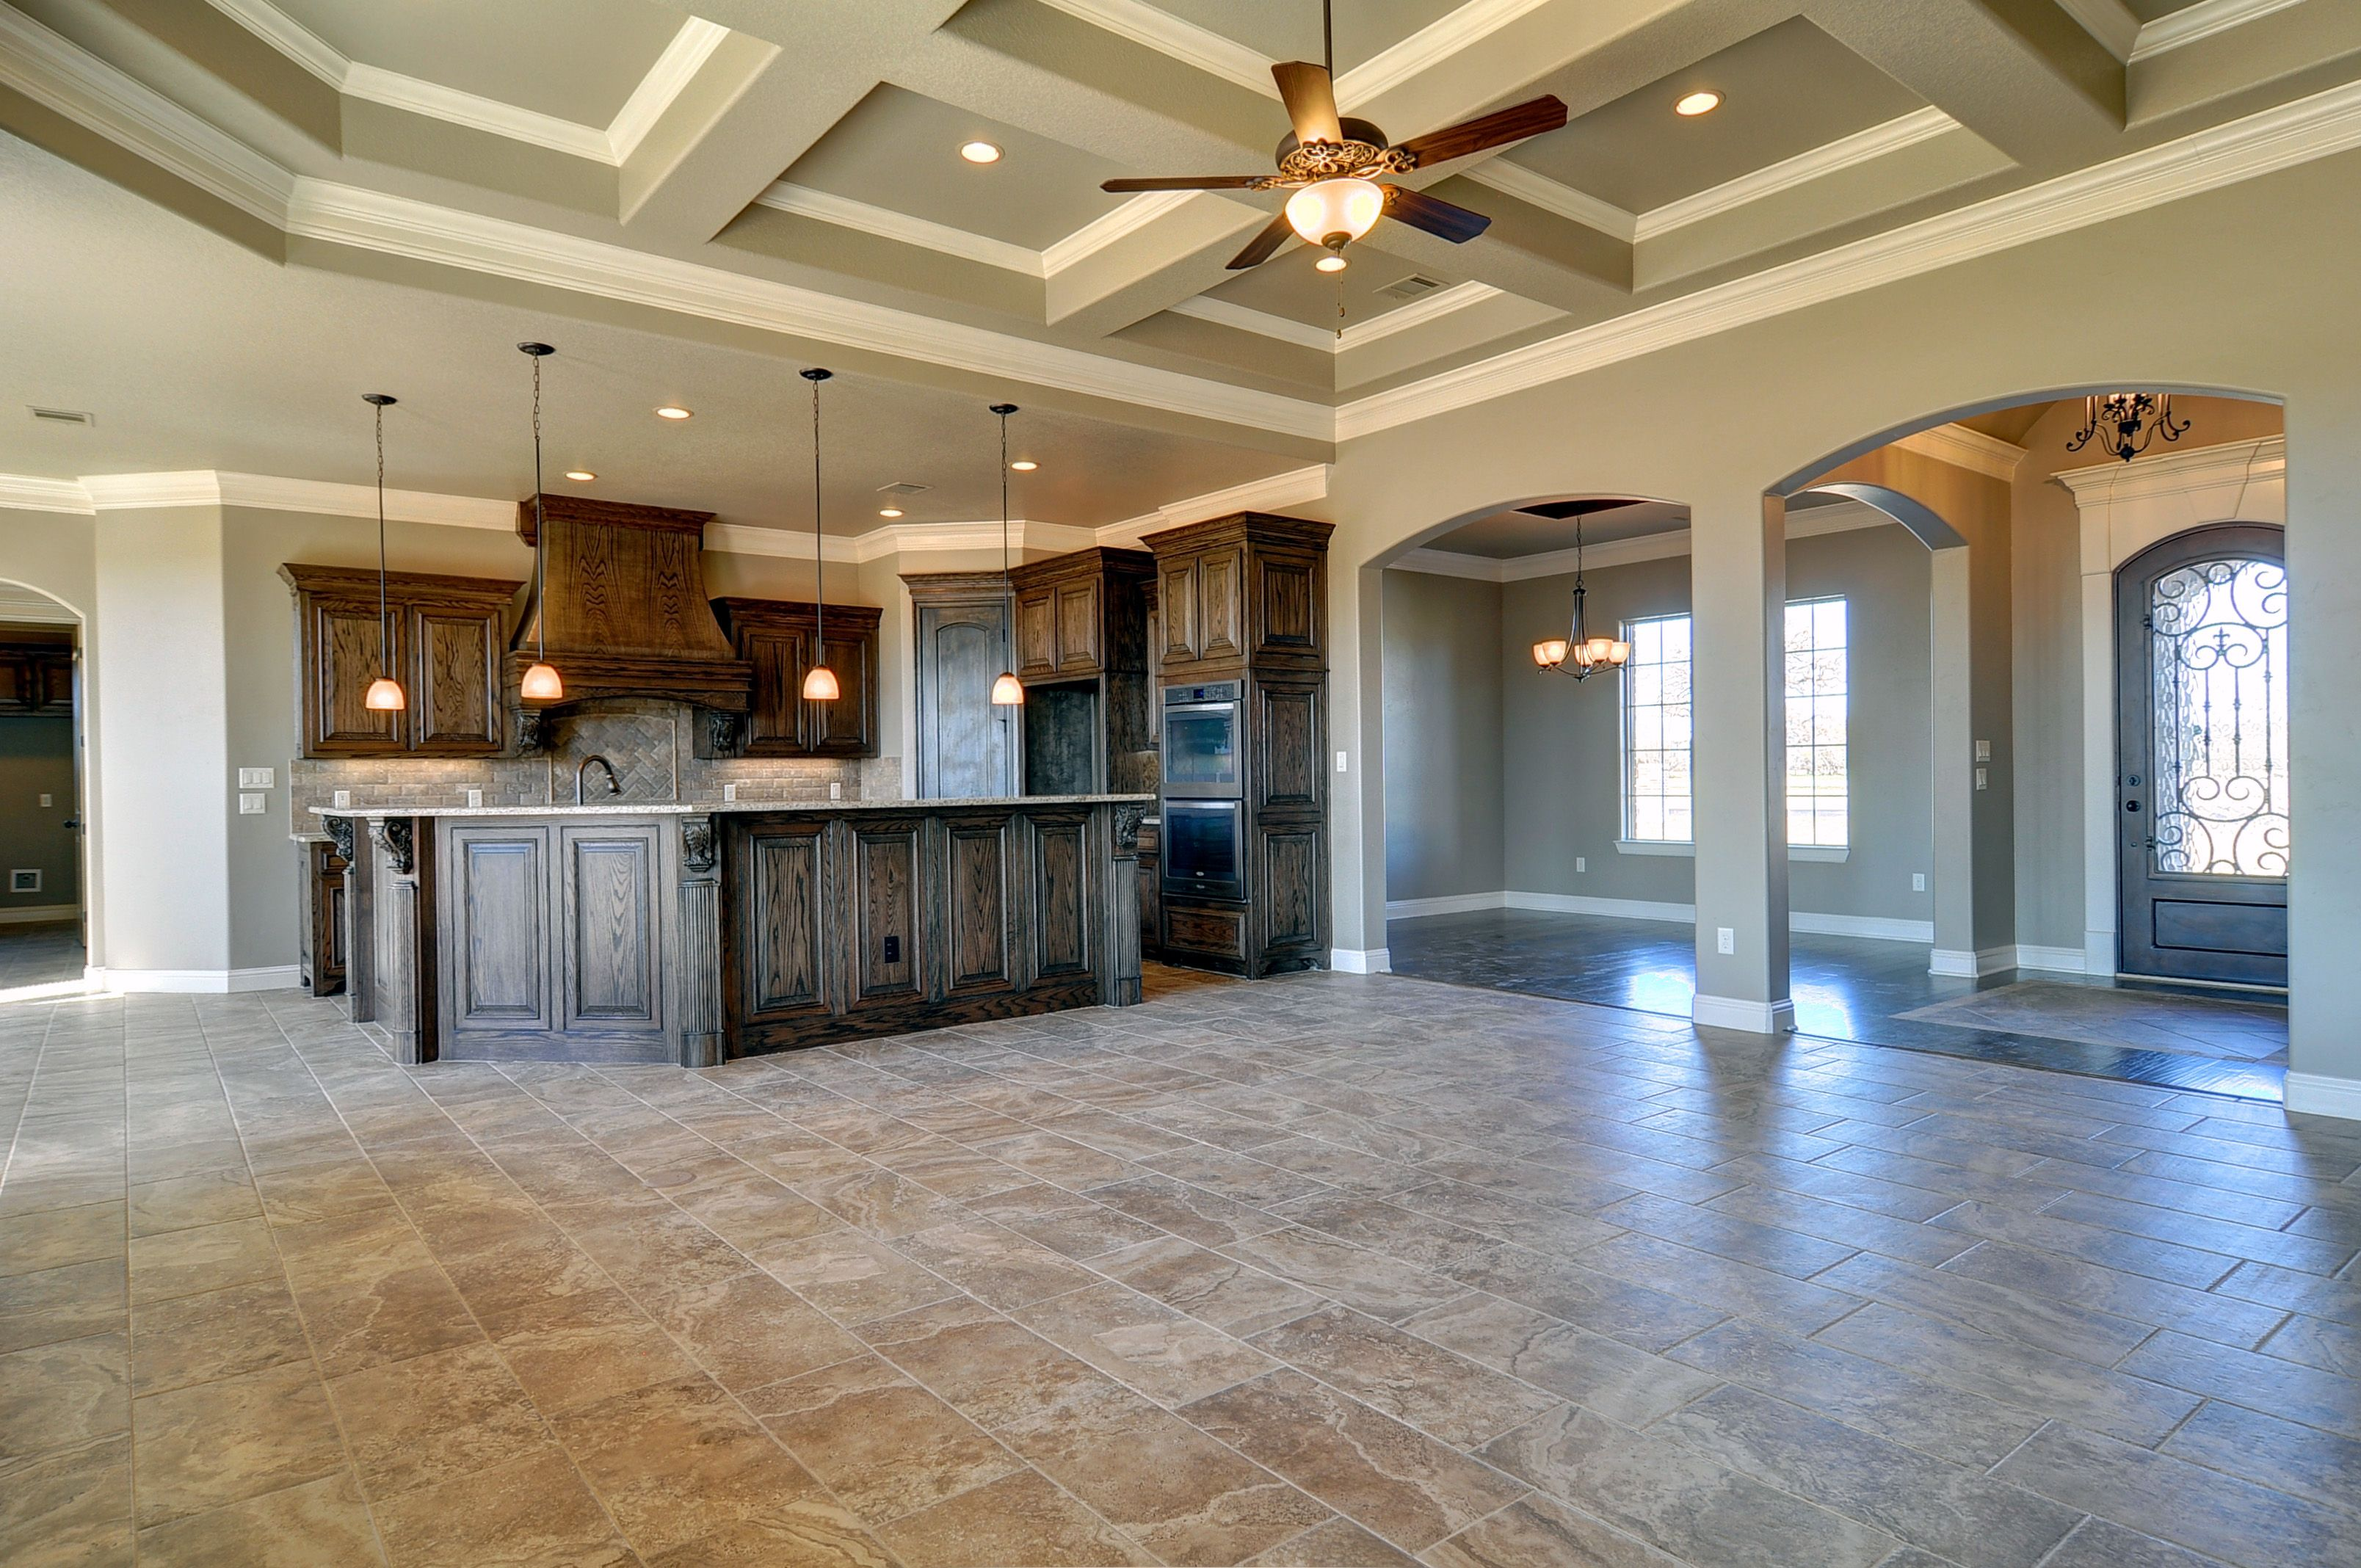 couto homes paint color scheme walls and ceilings: sherwin